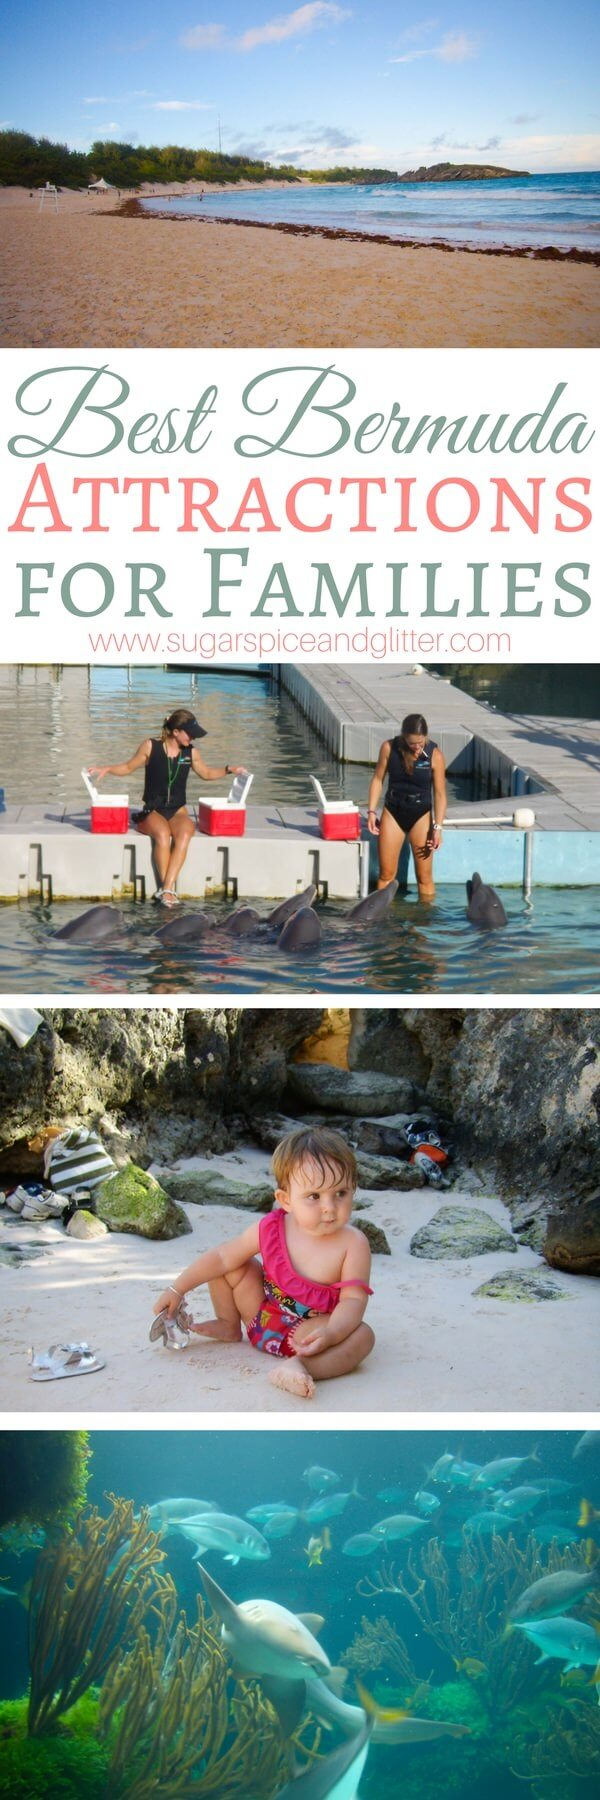 If Bermuda is on your family's bucket list, you need to check out this list of the Best Bermuda Attractions for families - some of them are free and some are one-of-a-kind experiences you will only find in Bermuda